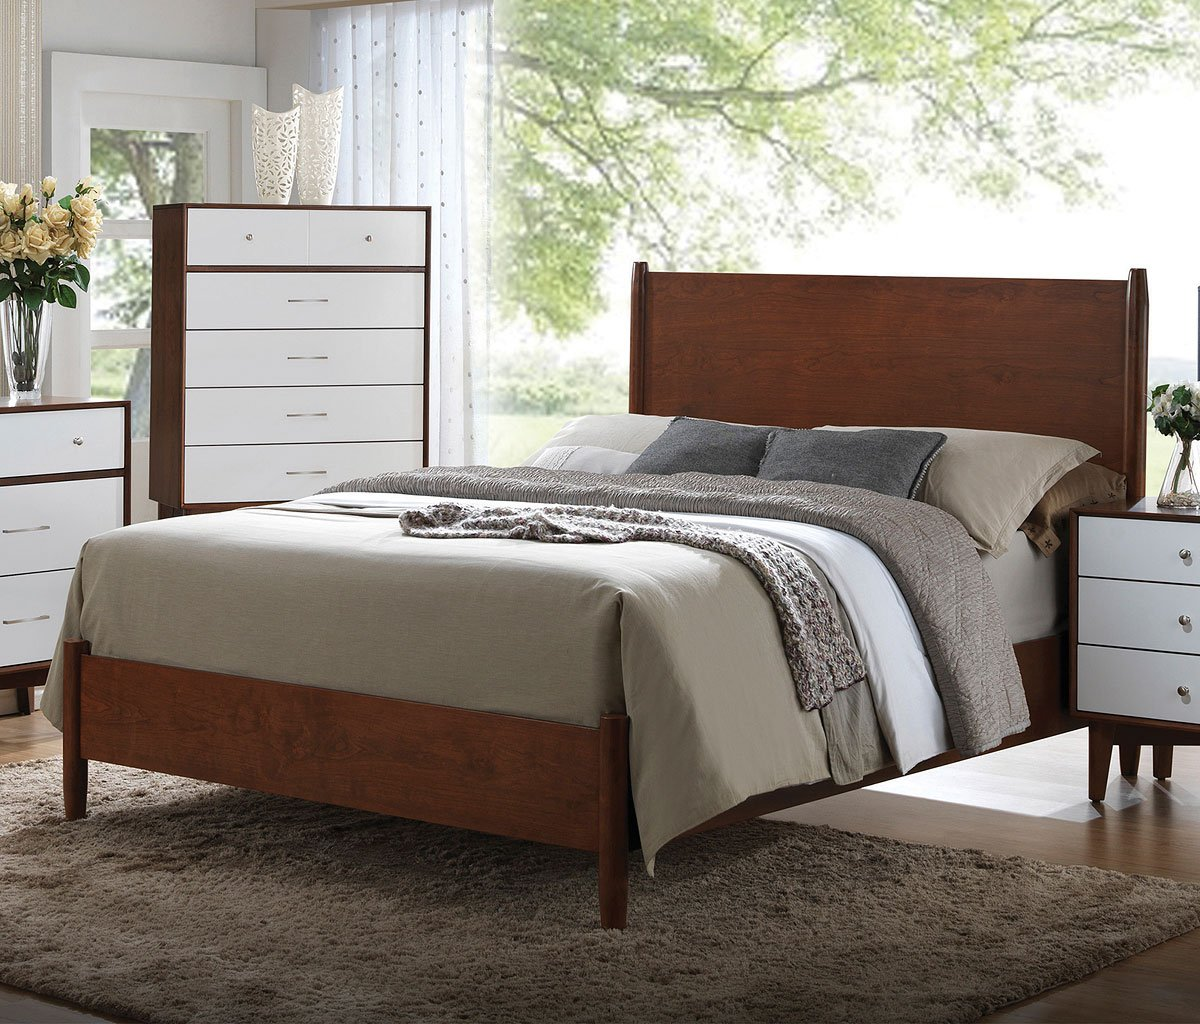 Oakwood Panel Bedroom Set By Coaster Furniture